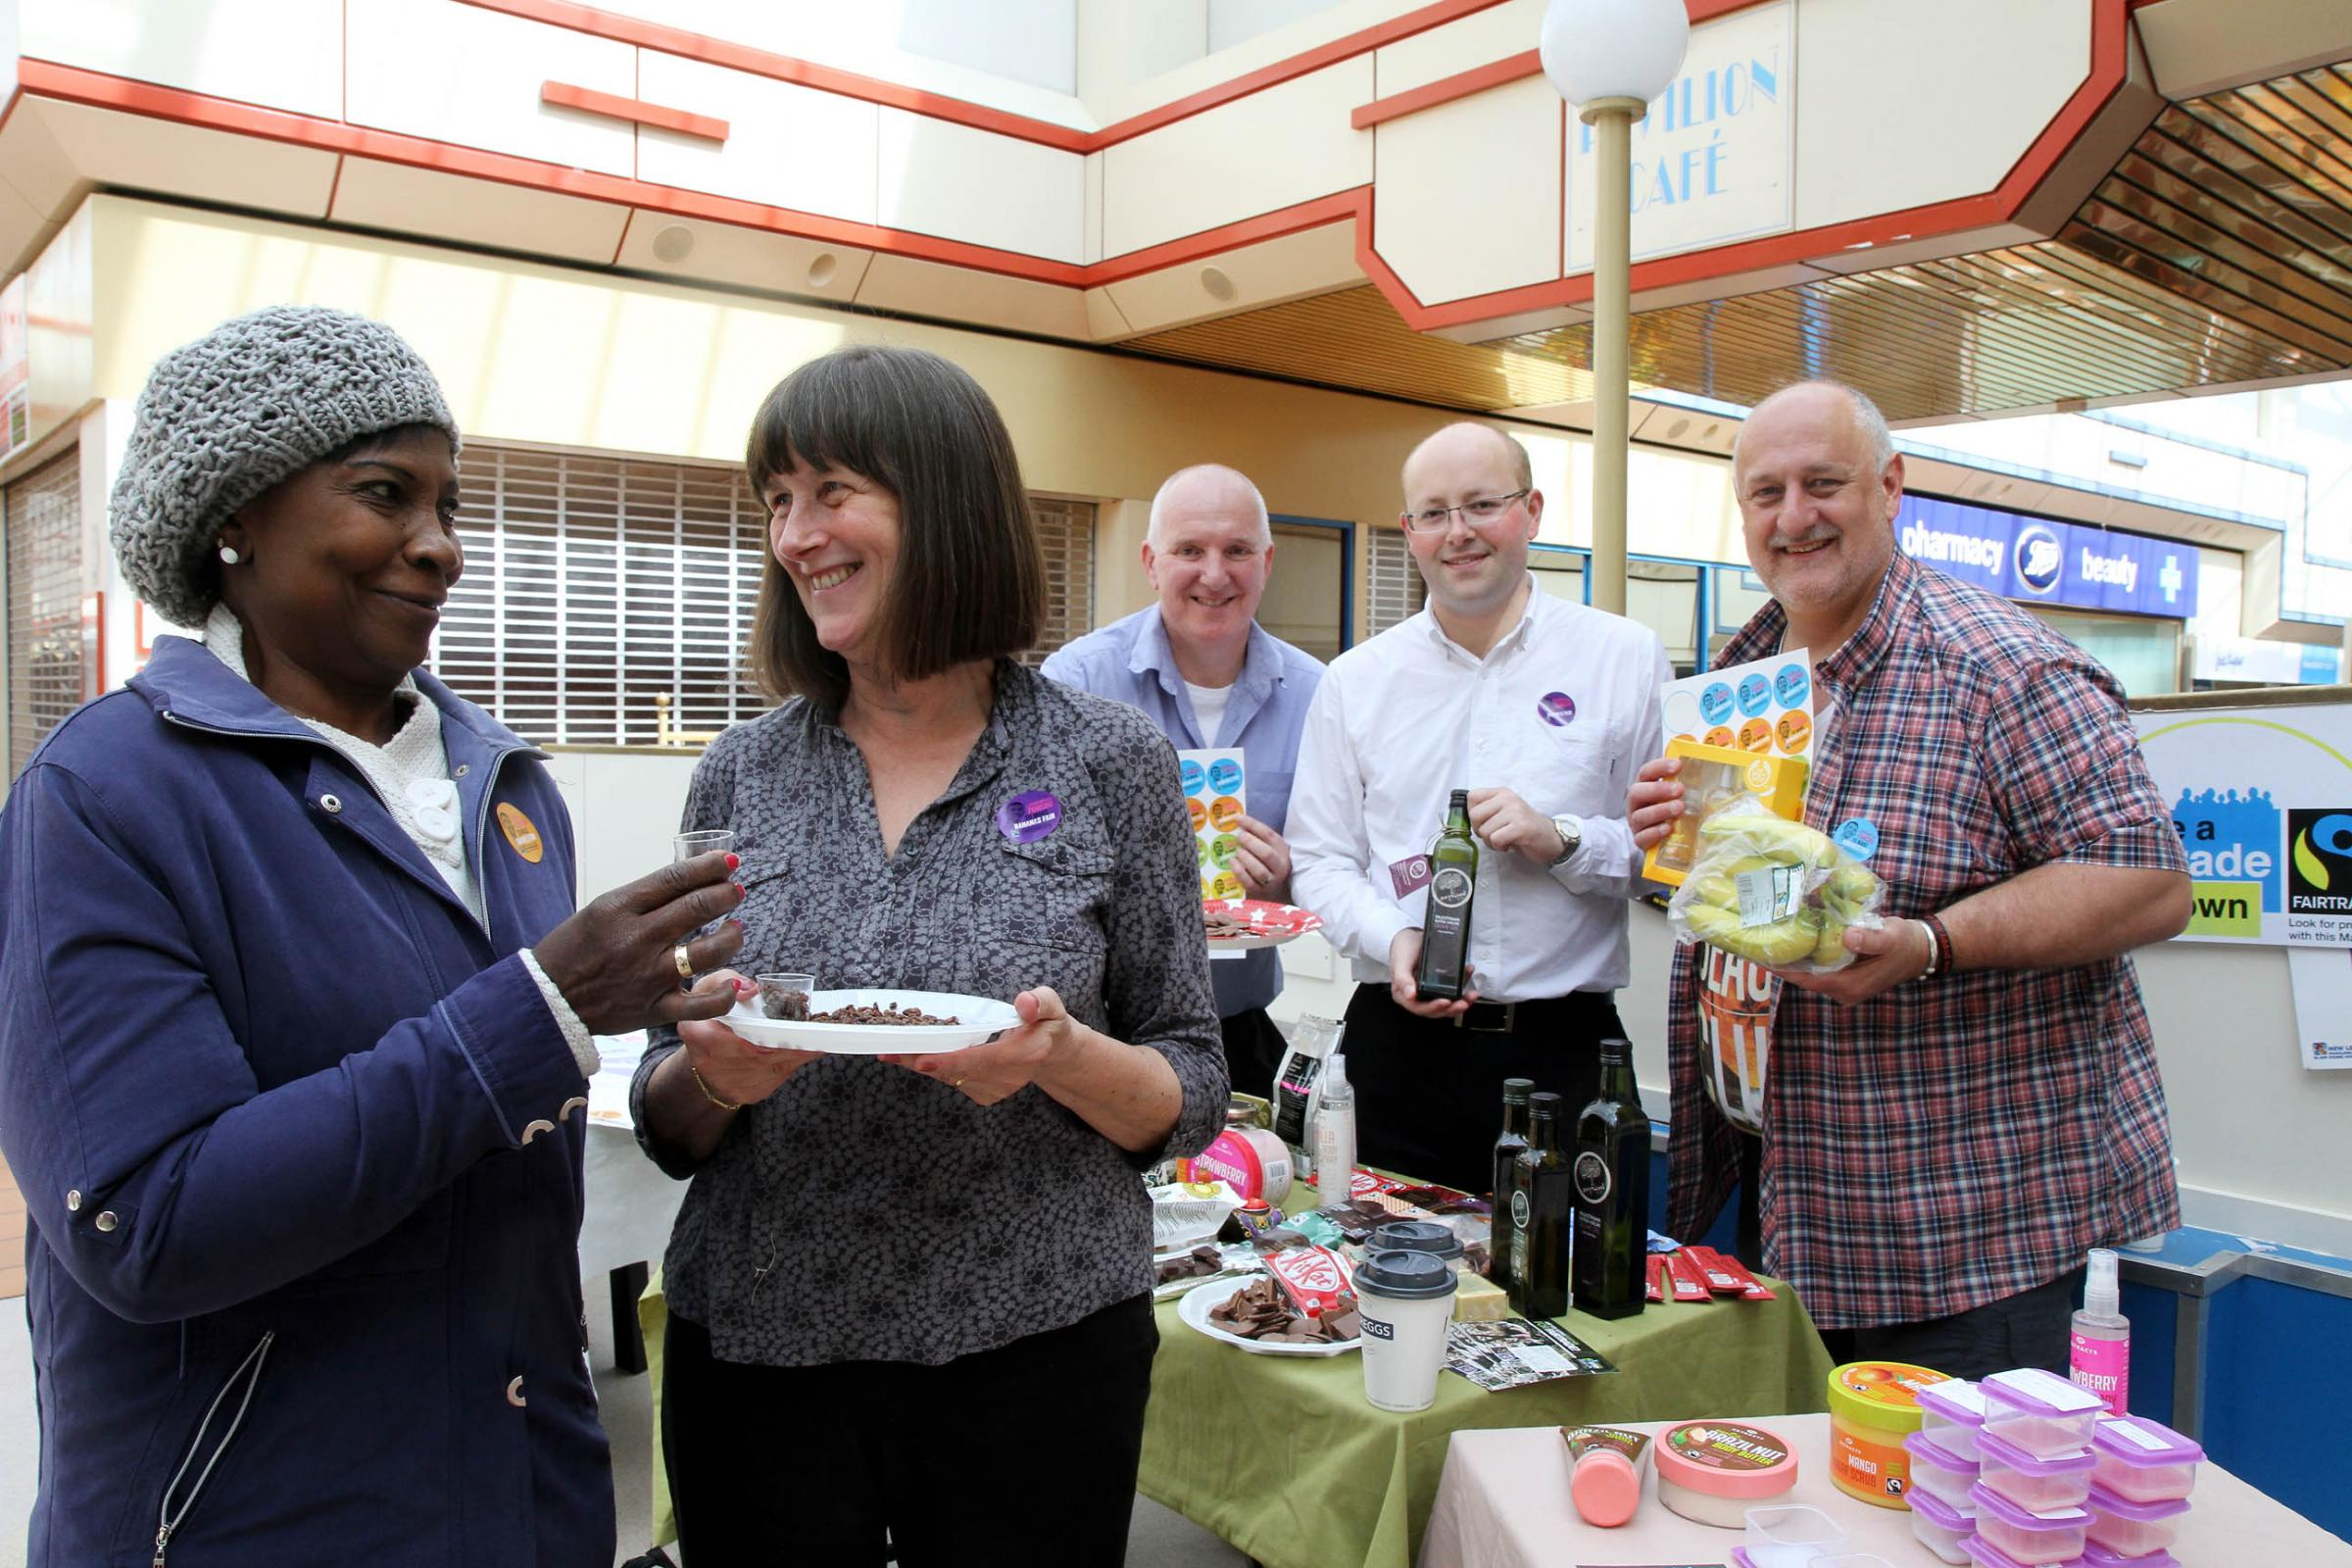 Visitor Yvette Davies, left, samples some Fairtrade food with, from left, Fairtrade volunteers Chris Goddard and Richard Dillon, Councillor Adrian Farley and Airedale Shopping Centre manager Steve Seymour